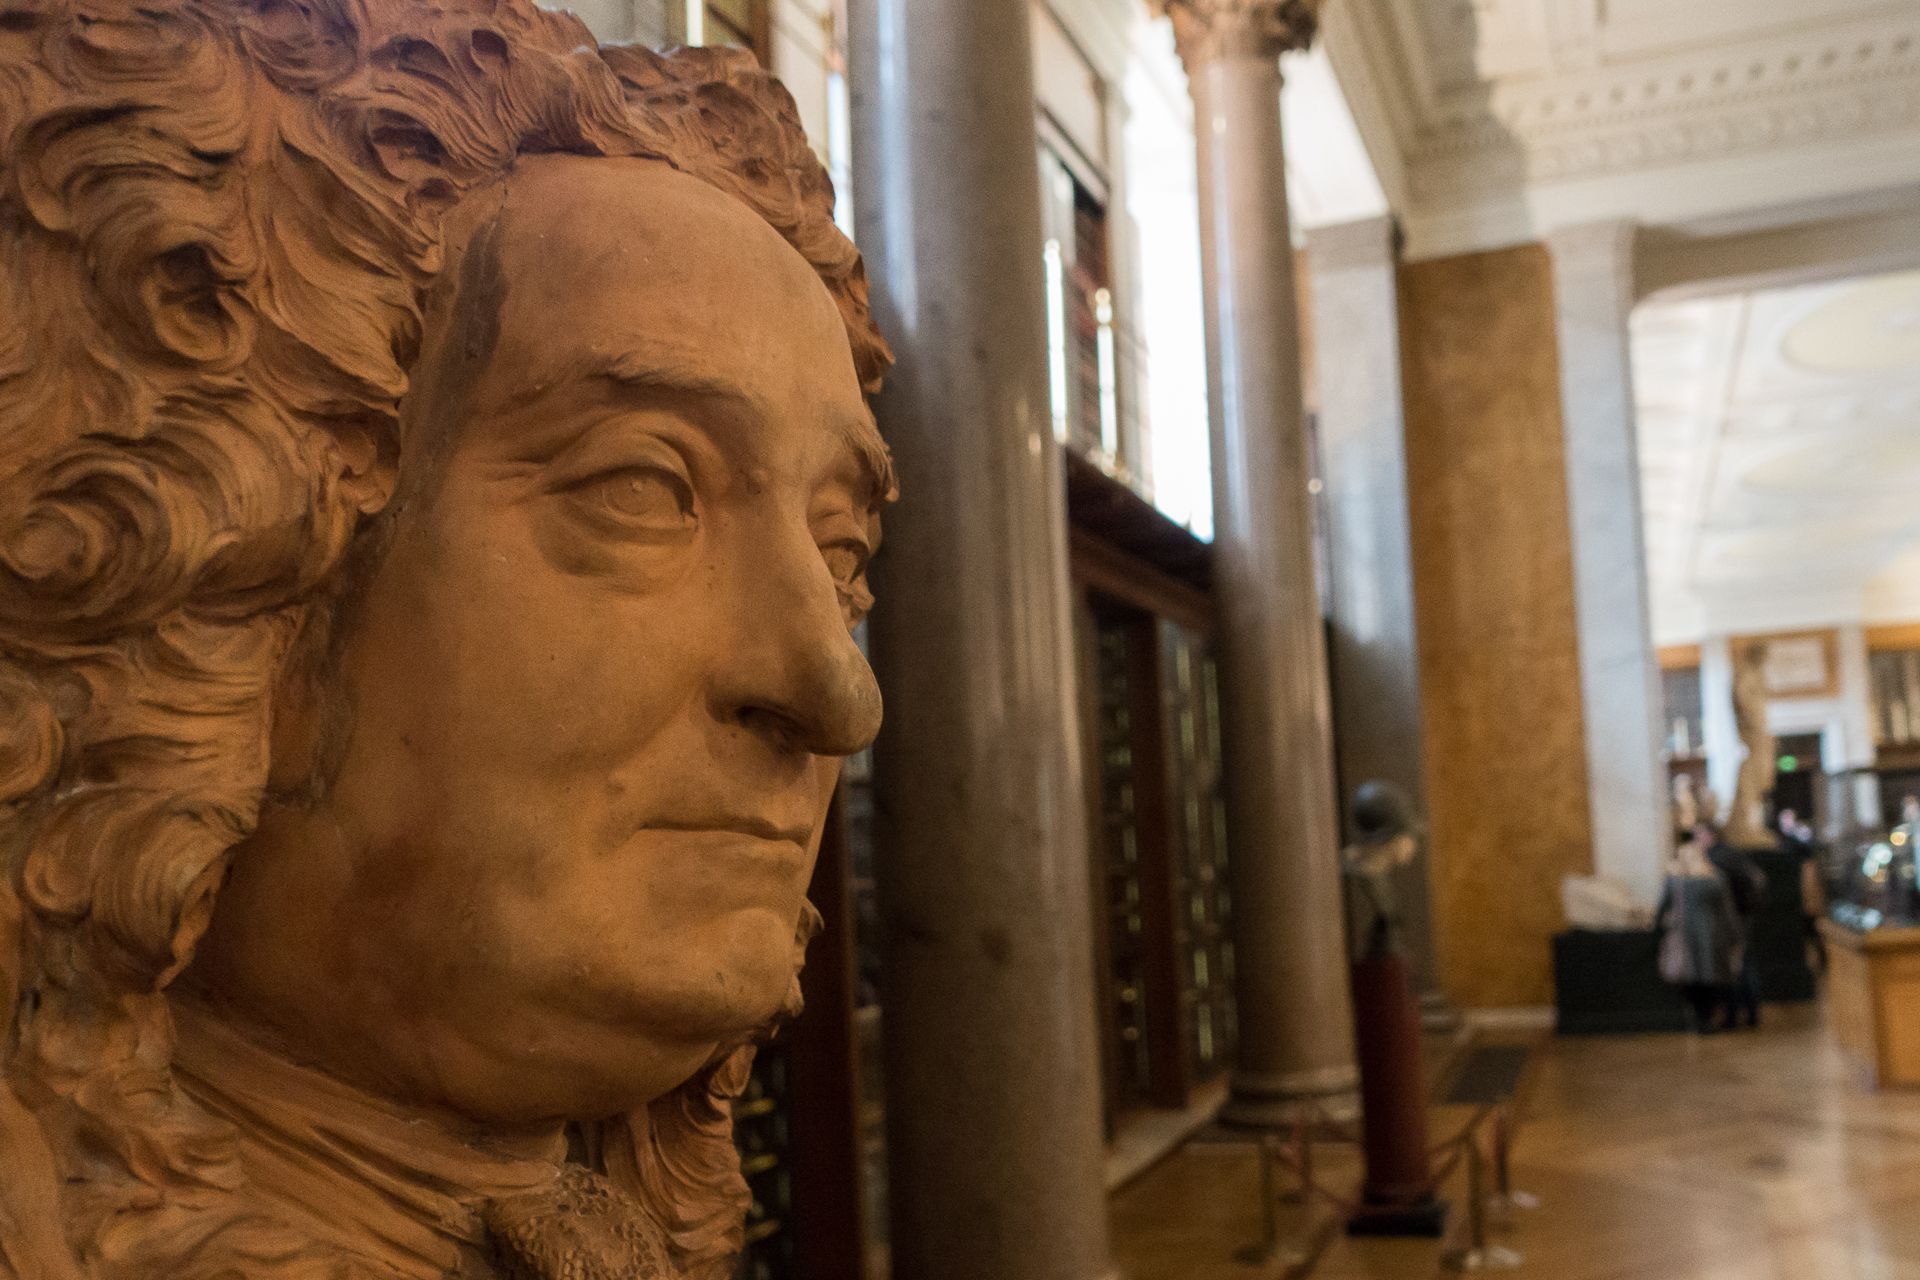 The redisplay of the Hans Sloane bust is part of the British Museum's efforts to address Britain's colonial past Photo: Paul Hudson